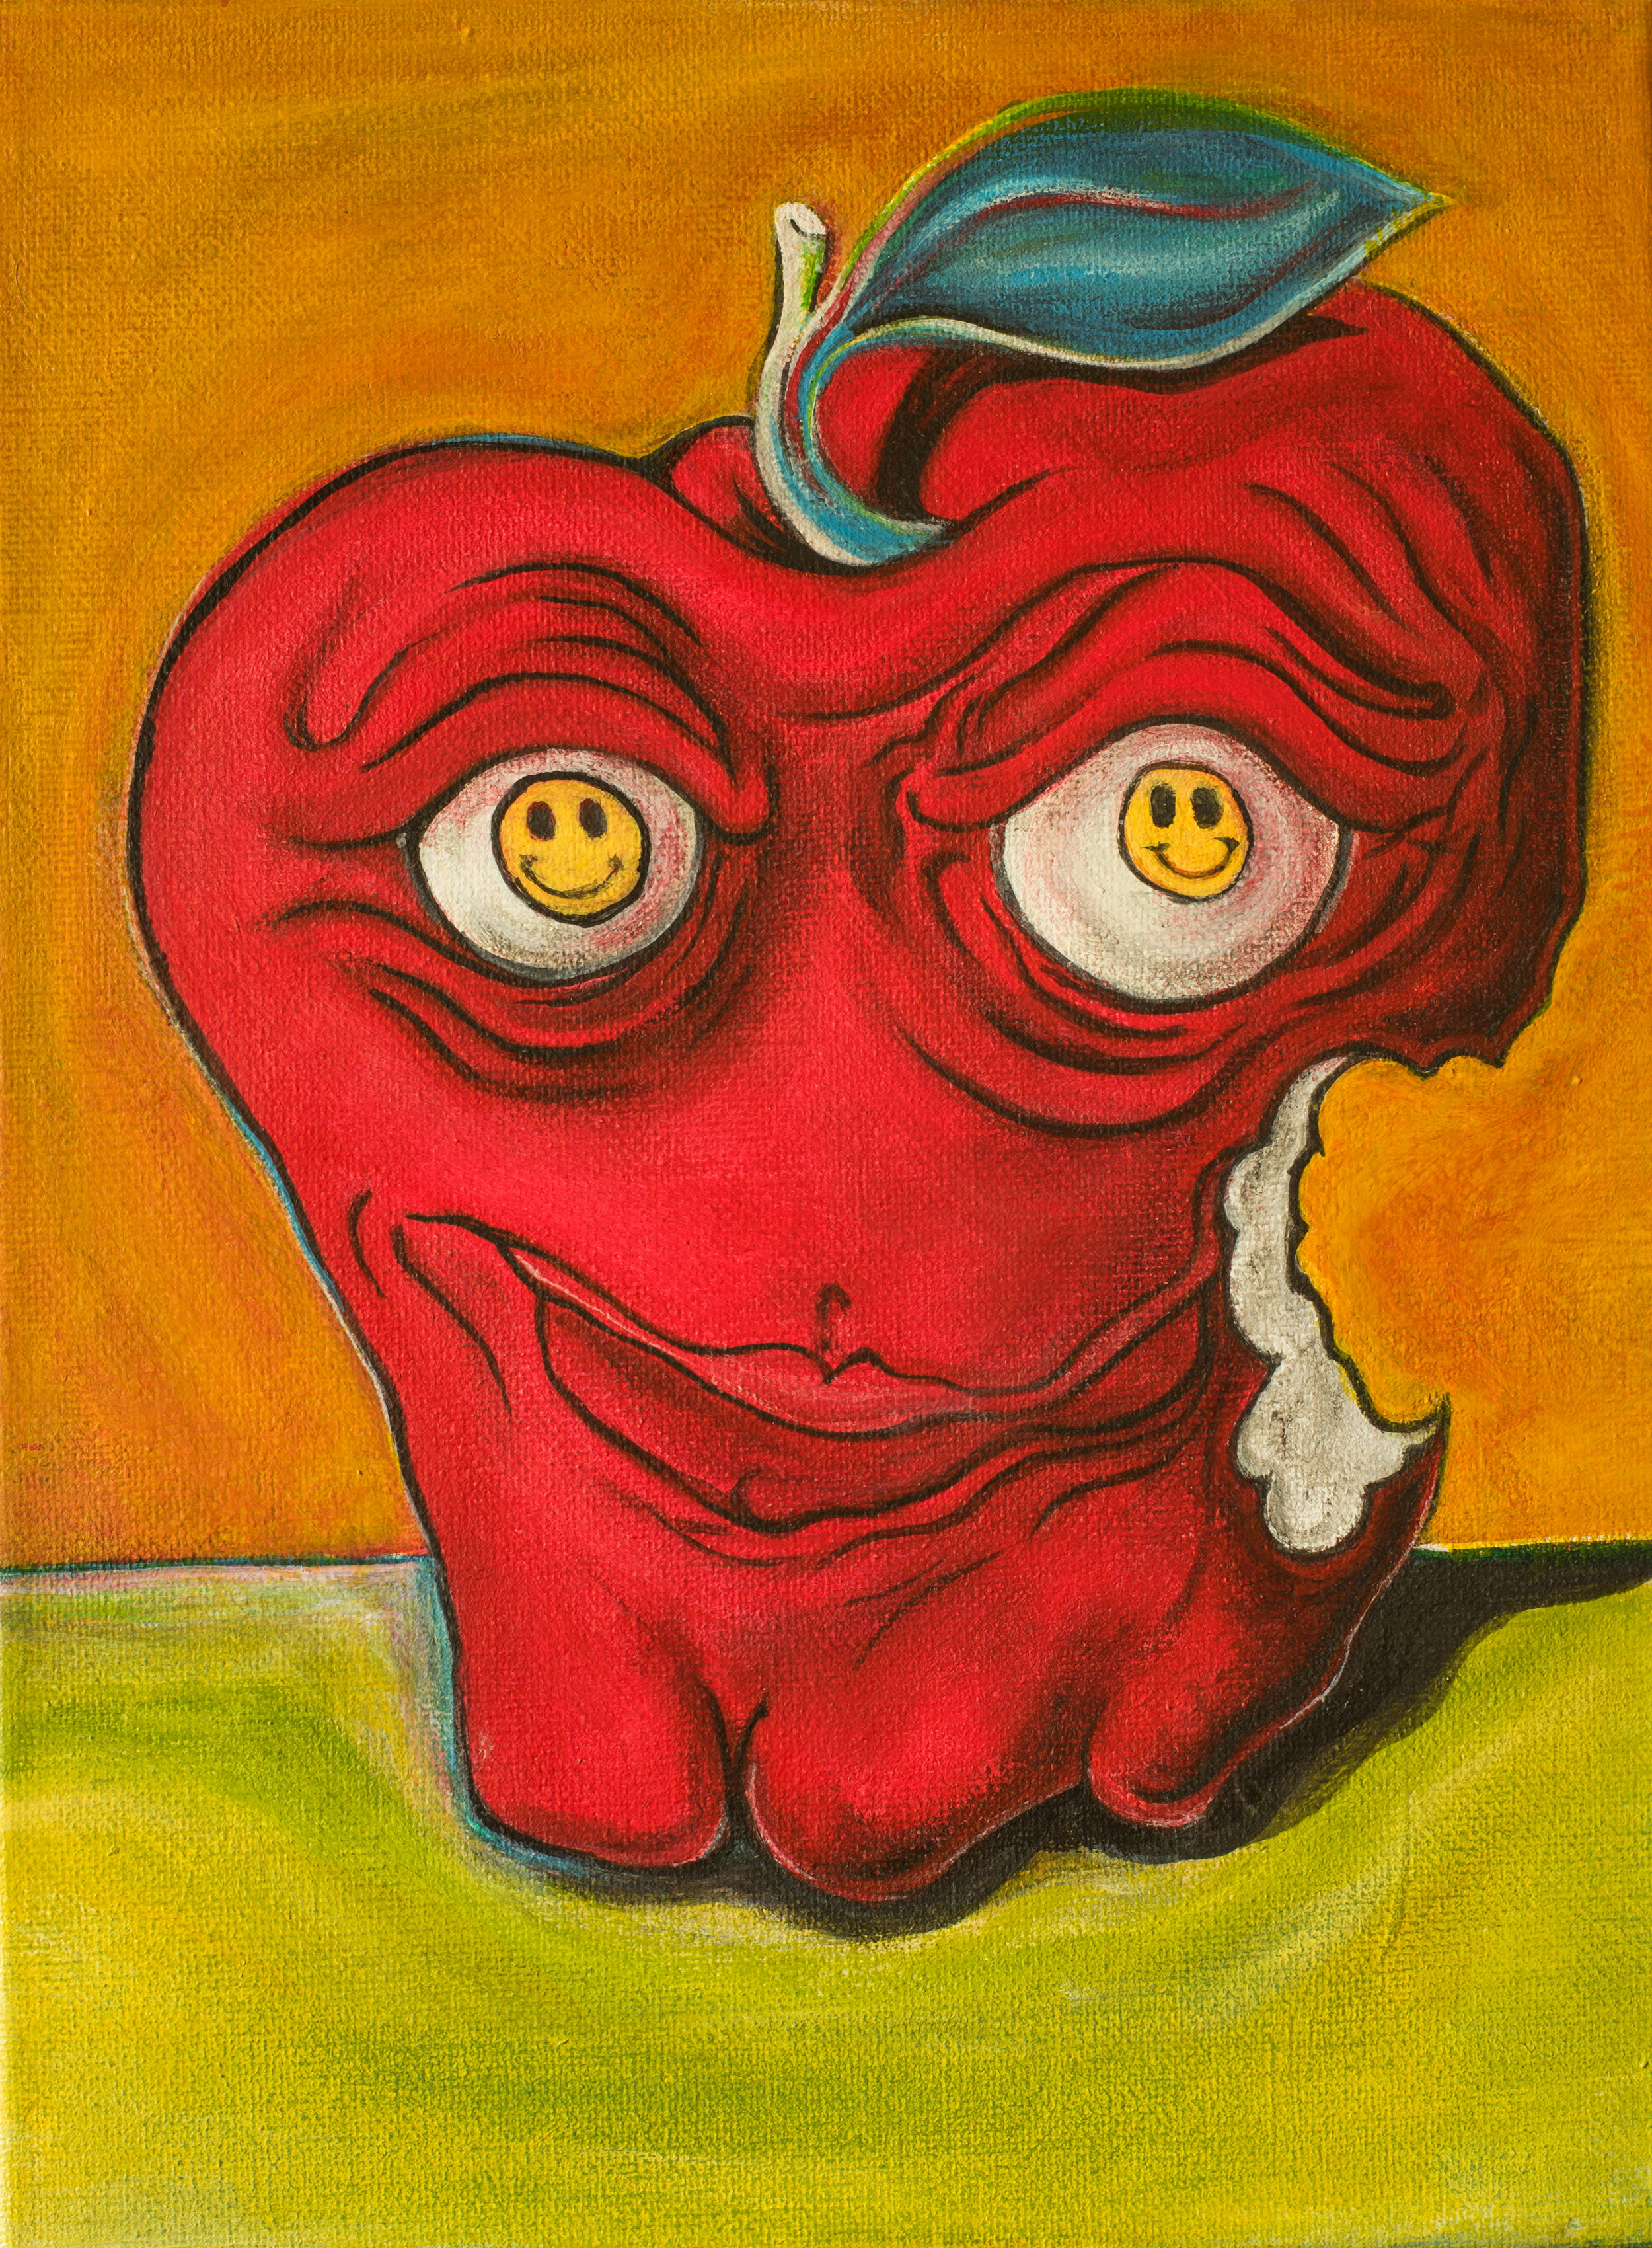 ANOTHER BITE OF THE APPLE